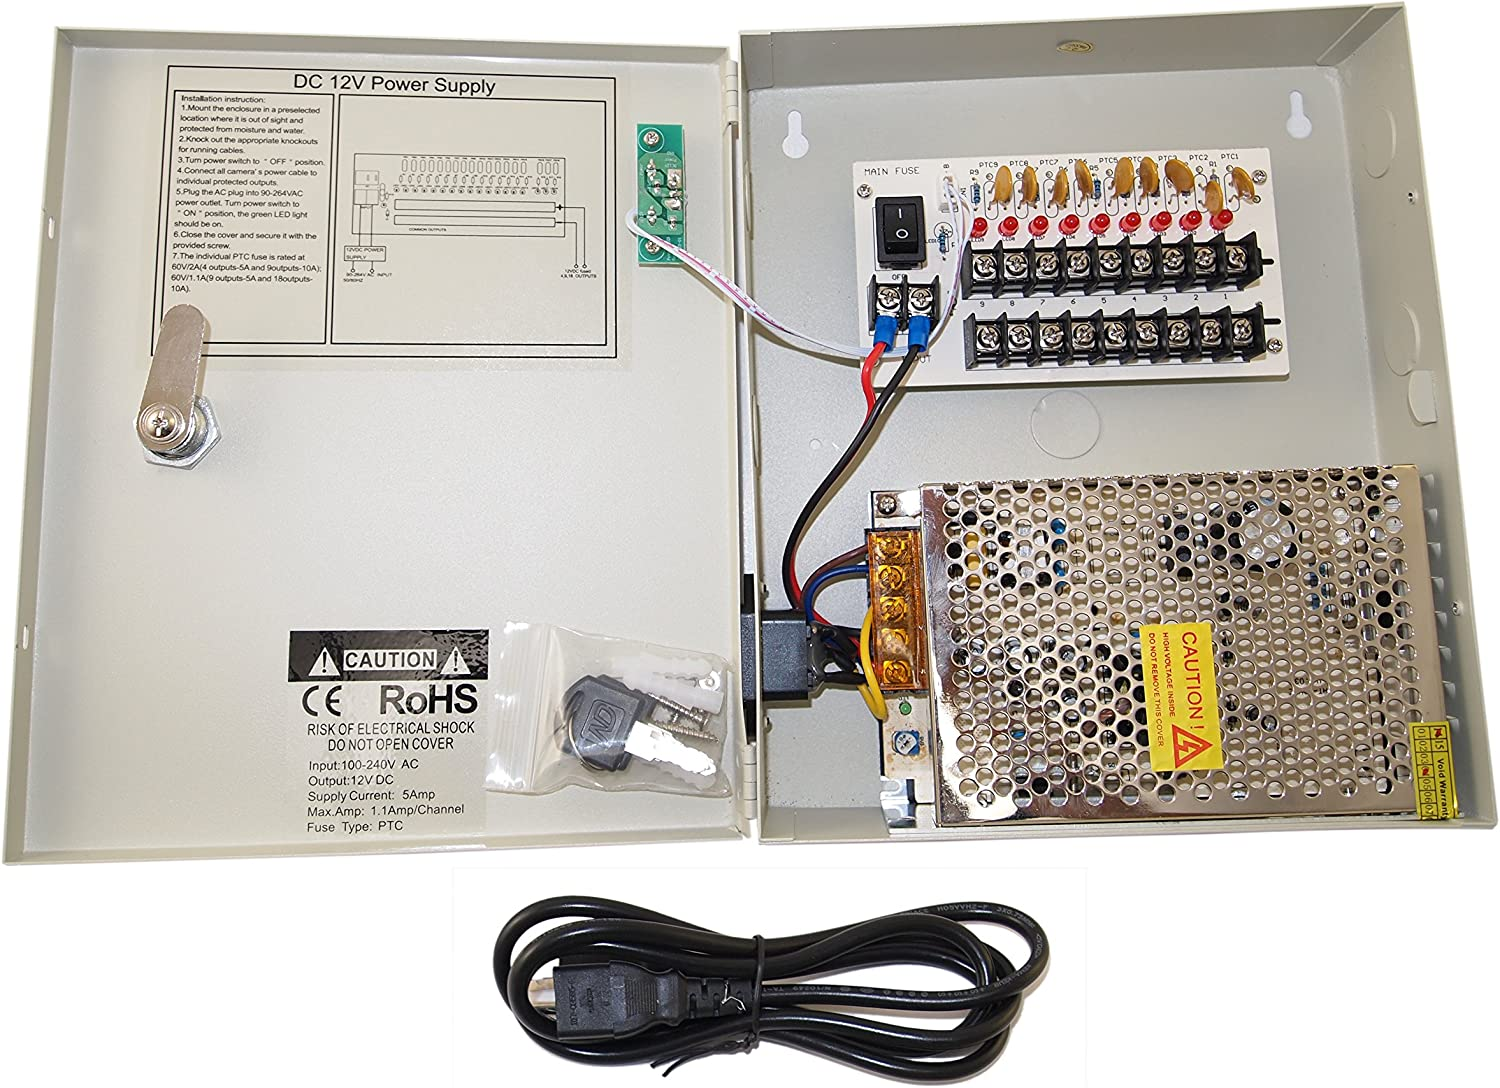 EVERTECH 8 Our shop OFFers the best service Channel 9 Port Power Box 5A 12V Security Camera Am DC cheap